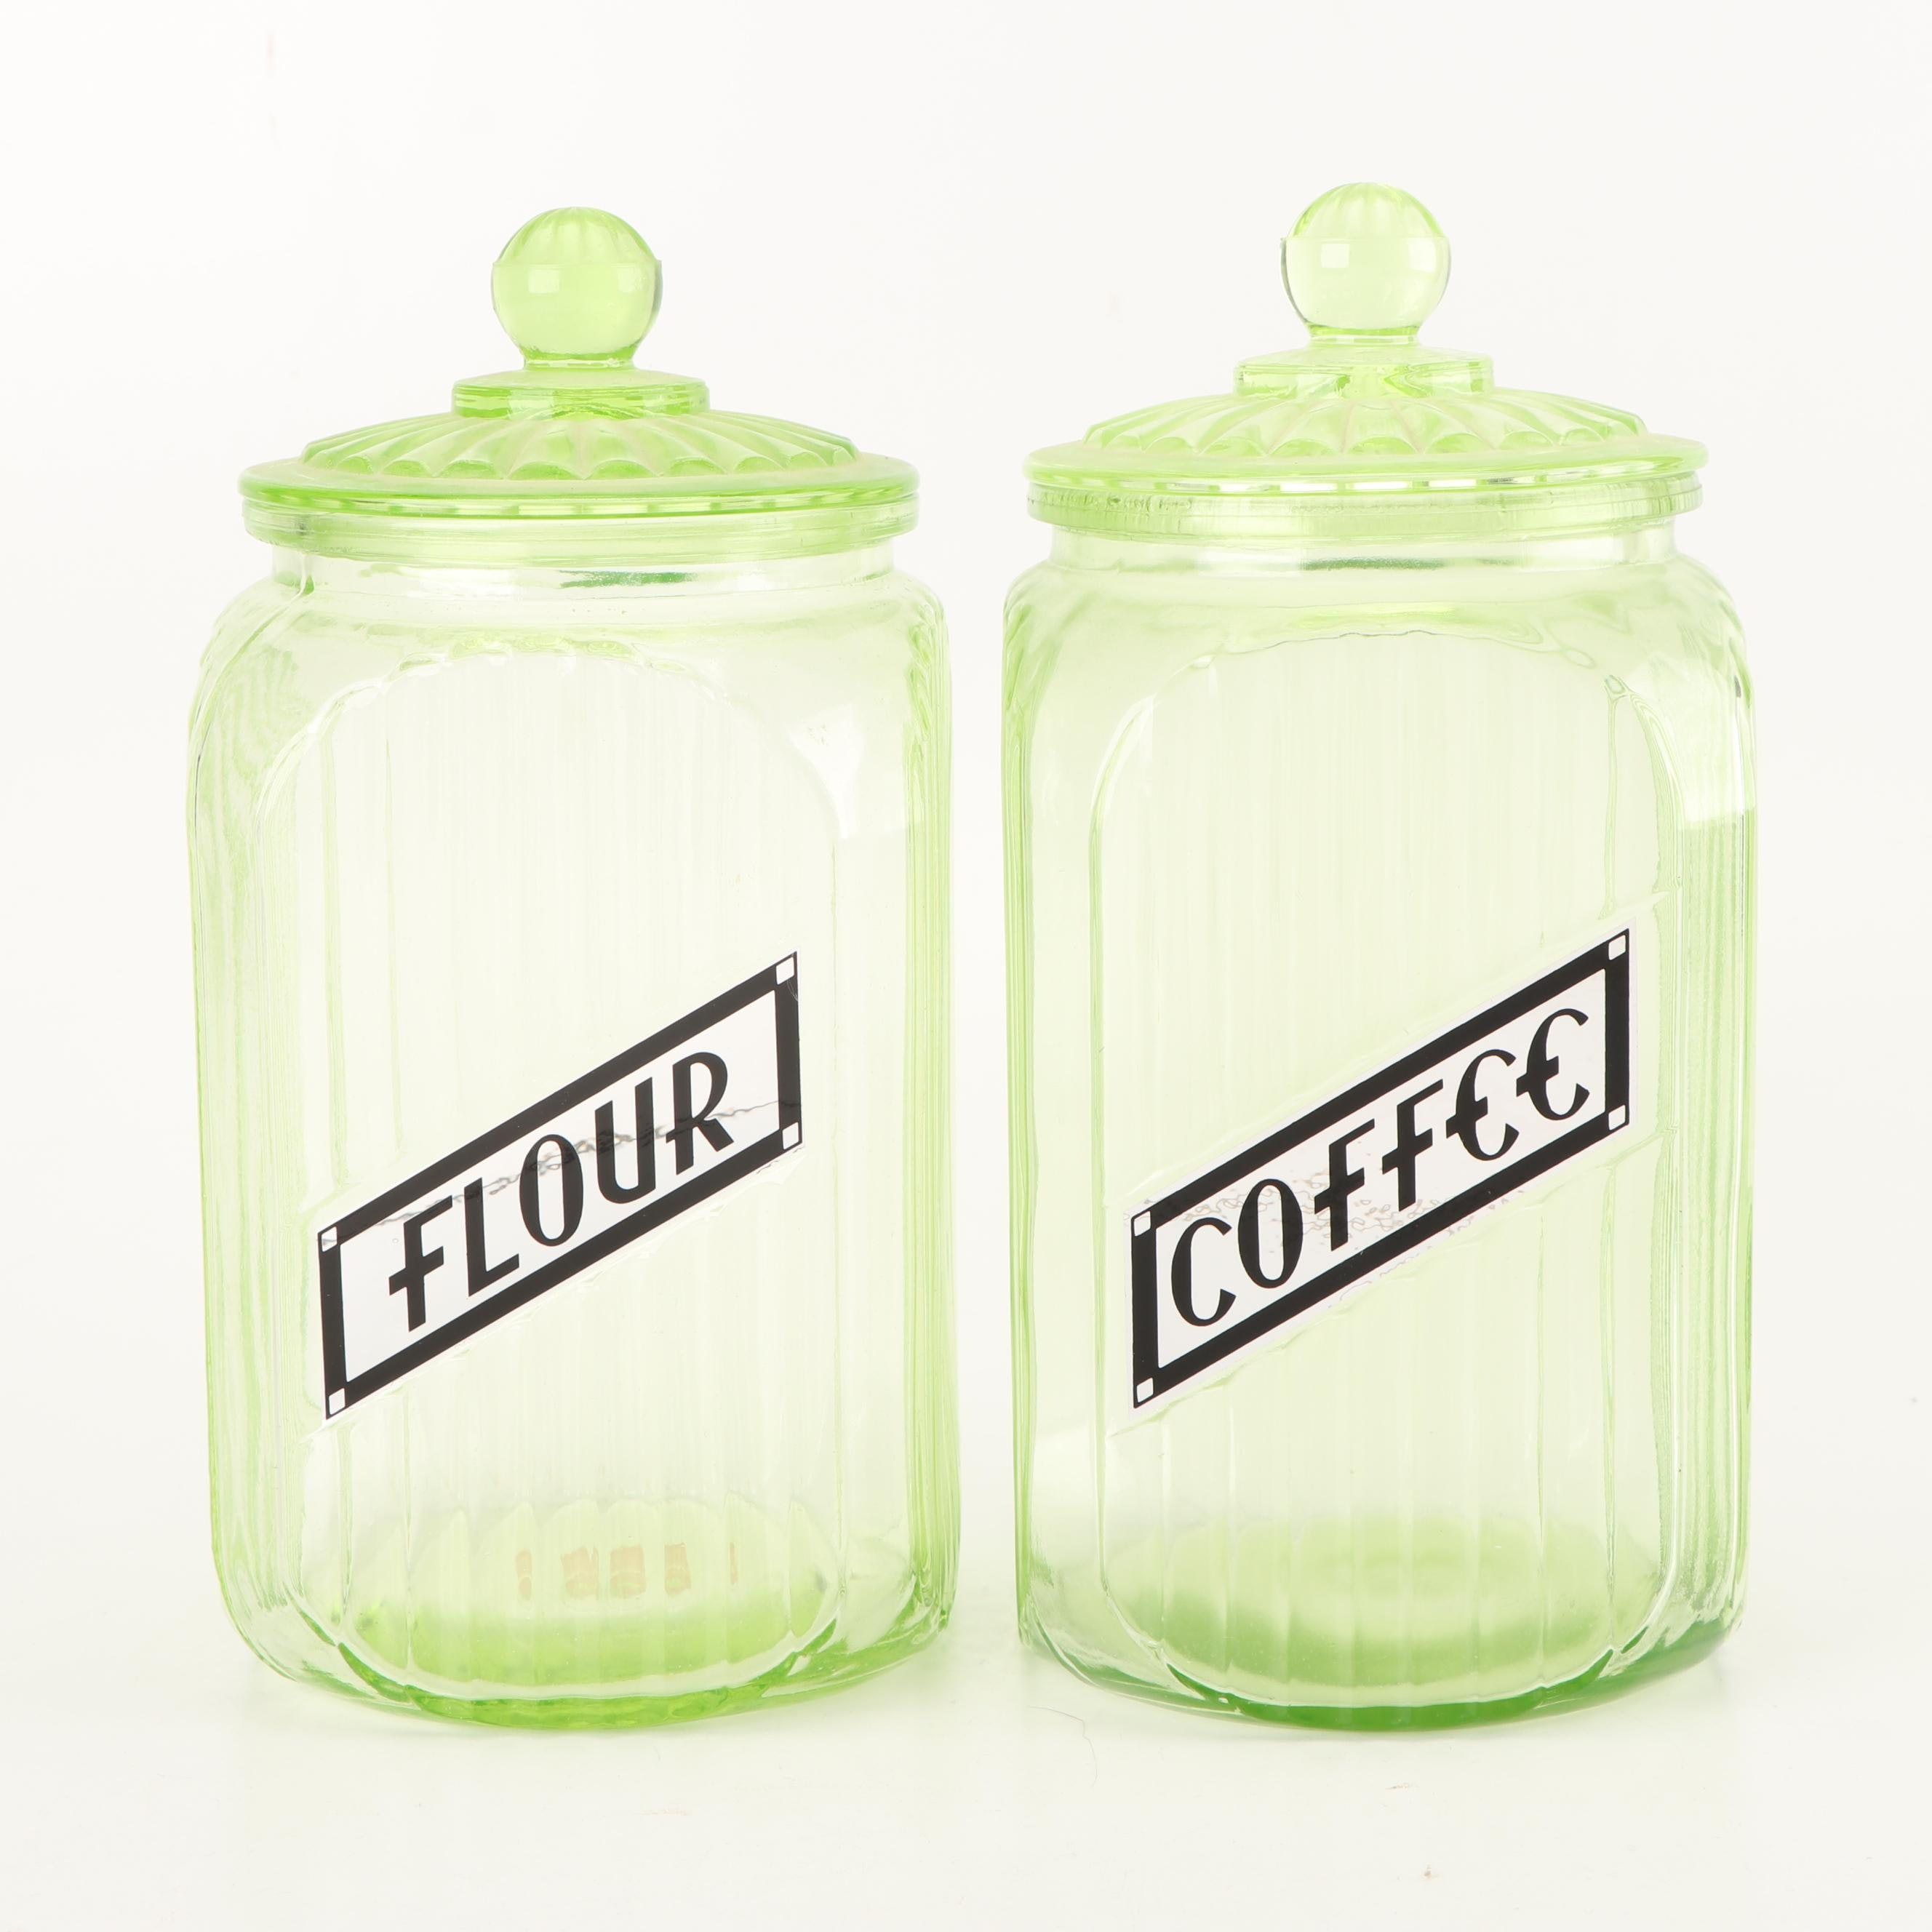 Anchor Hocking Depression Glass Flour and Coffee Storage Jars